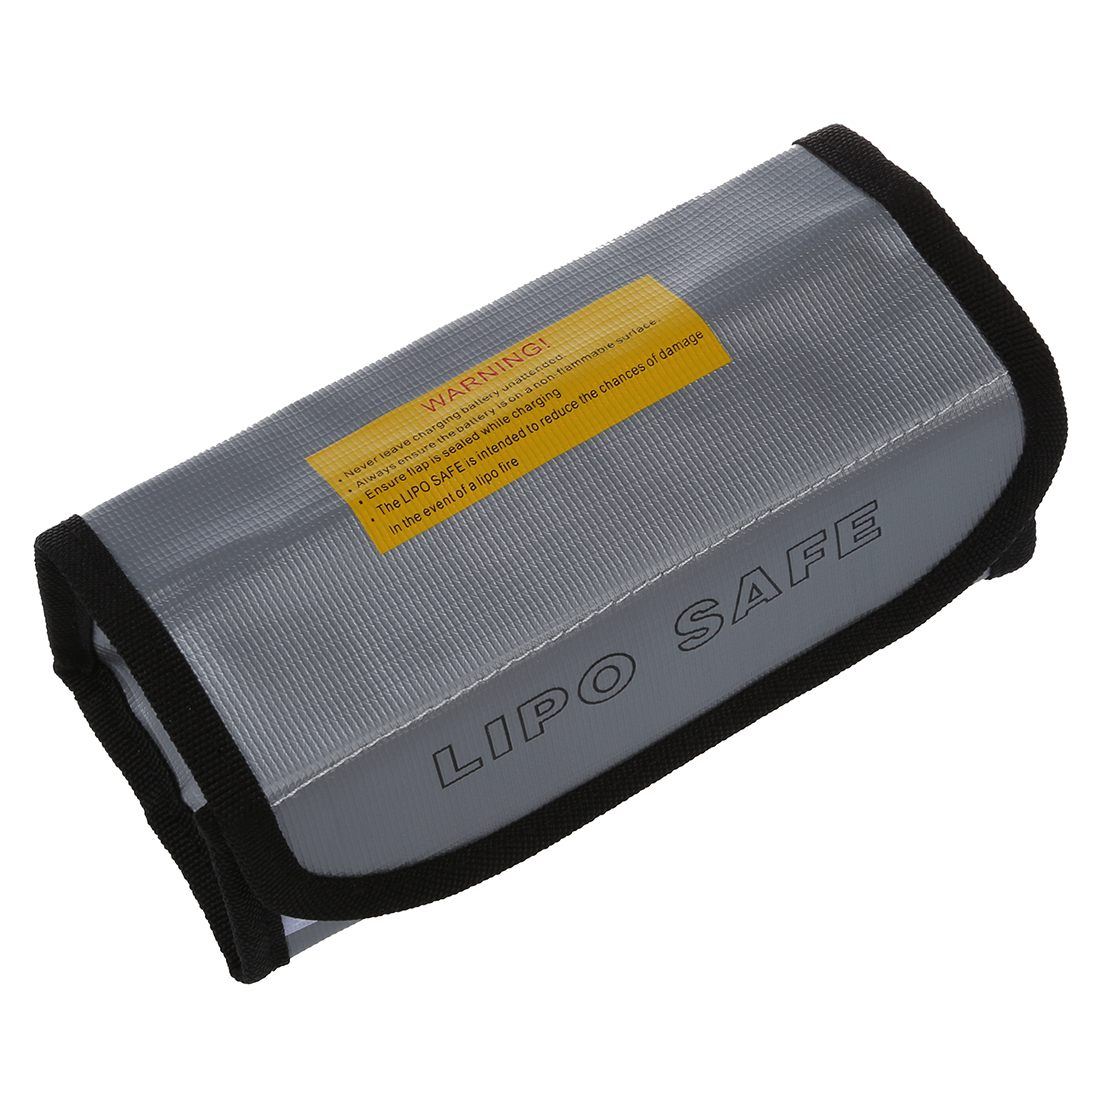 New 18.5 * 7.5 * 6cm Silver High Quality Glass Fiber RC LiPo Battery Safety Bag Safe Guard Charge Sack